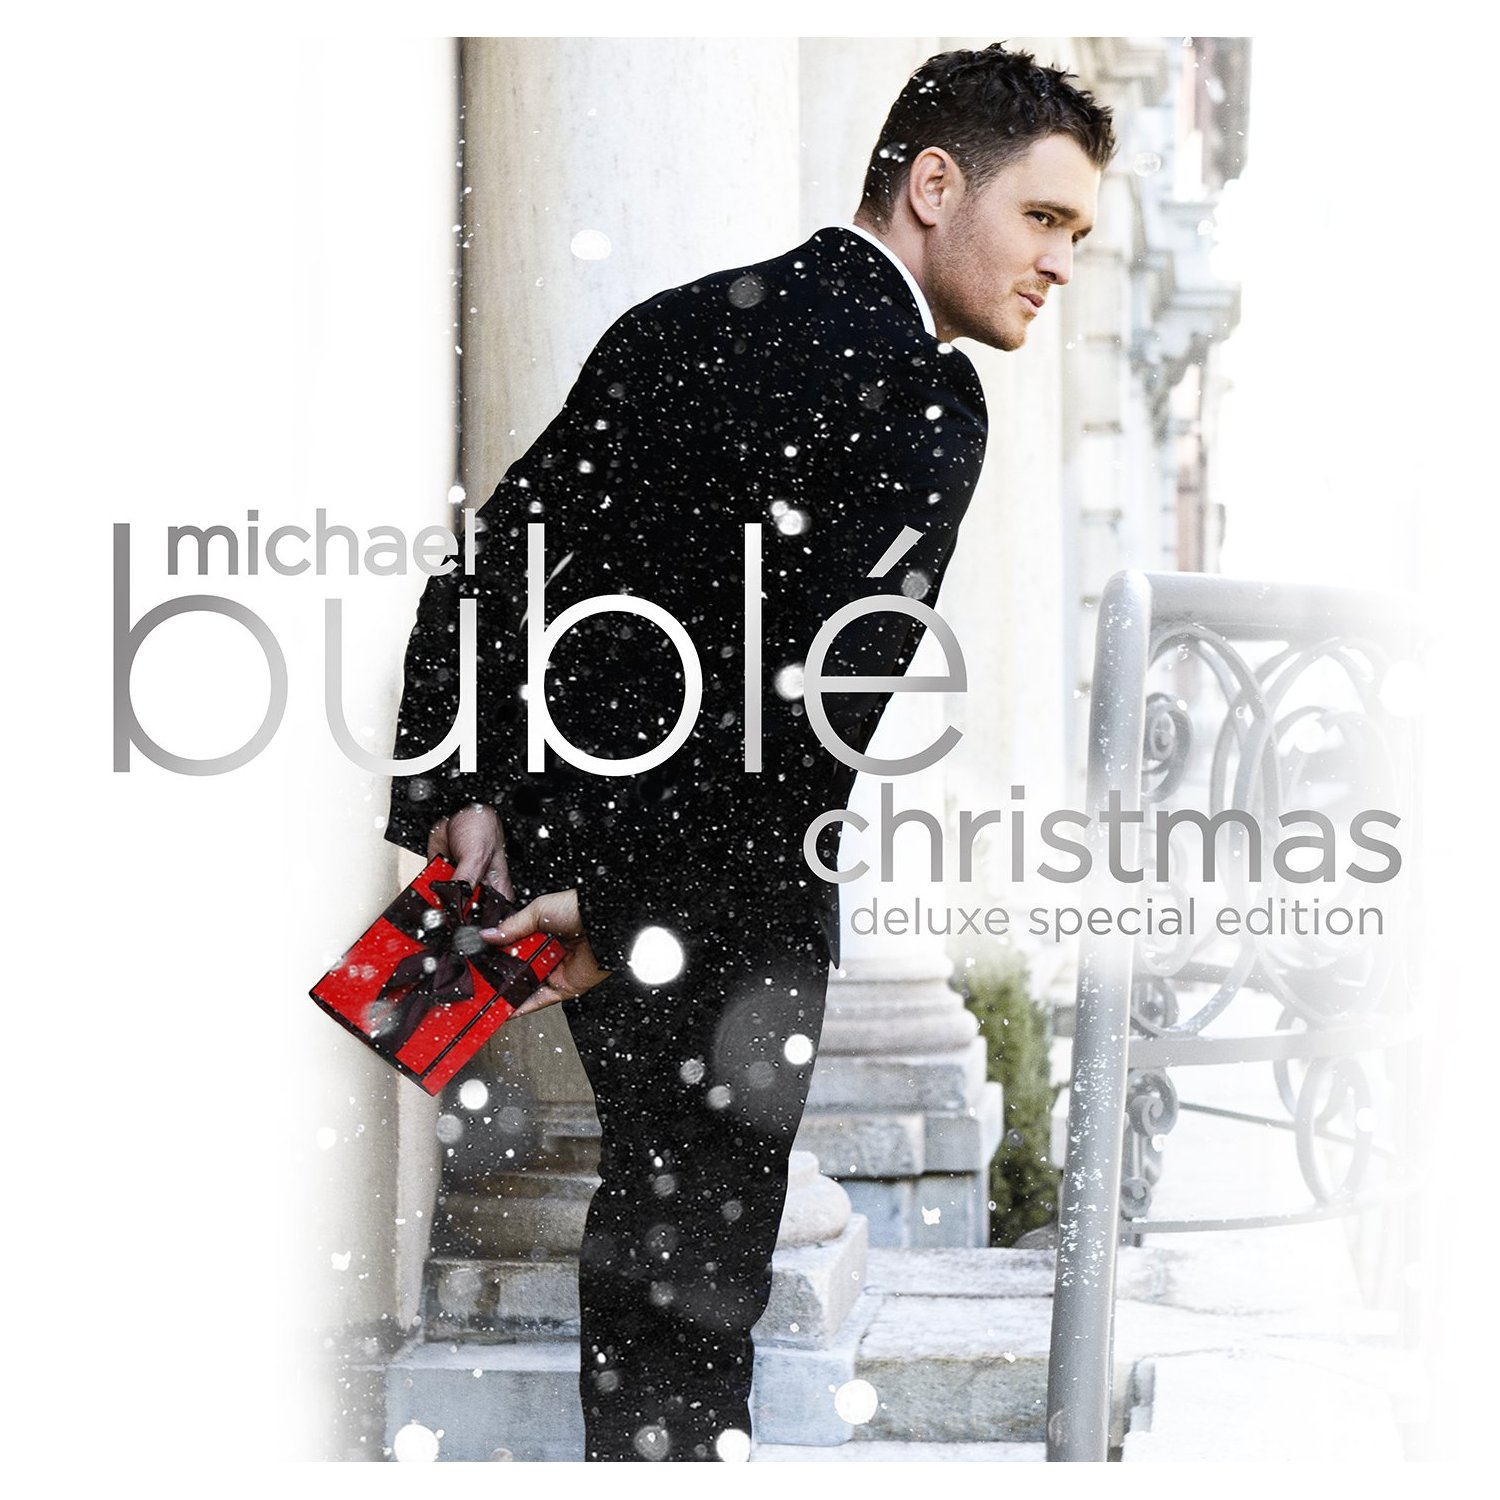 2012 Holiday Releases | Canadian Music Blog